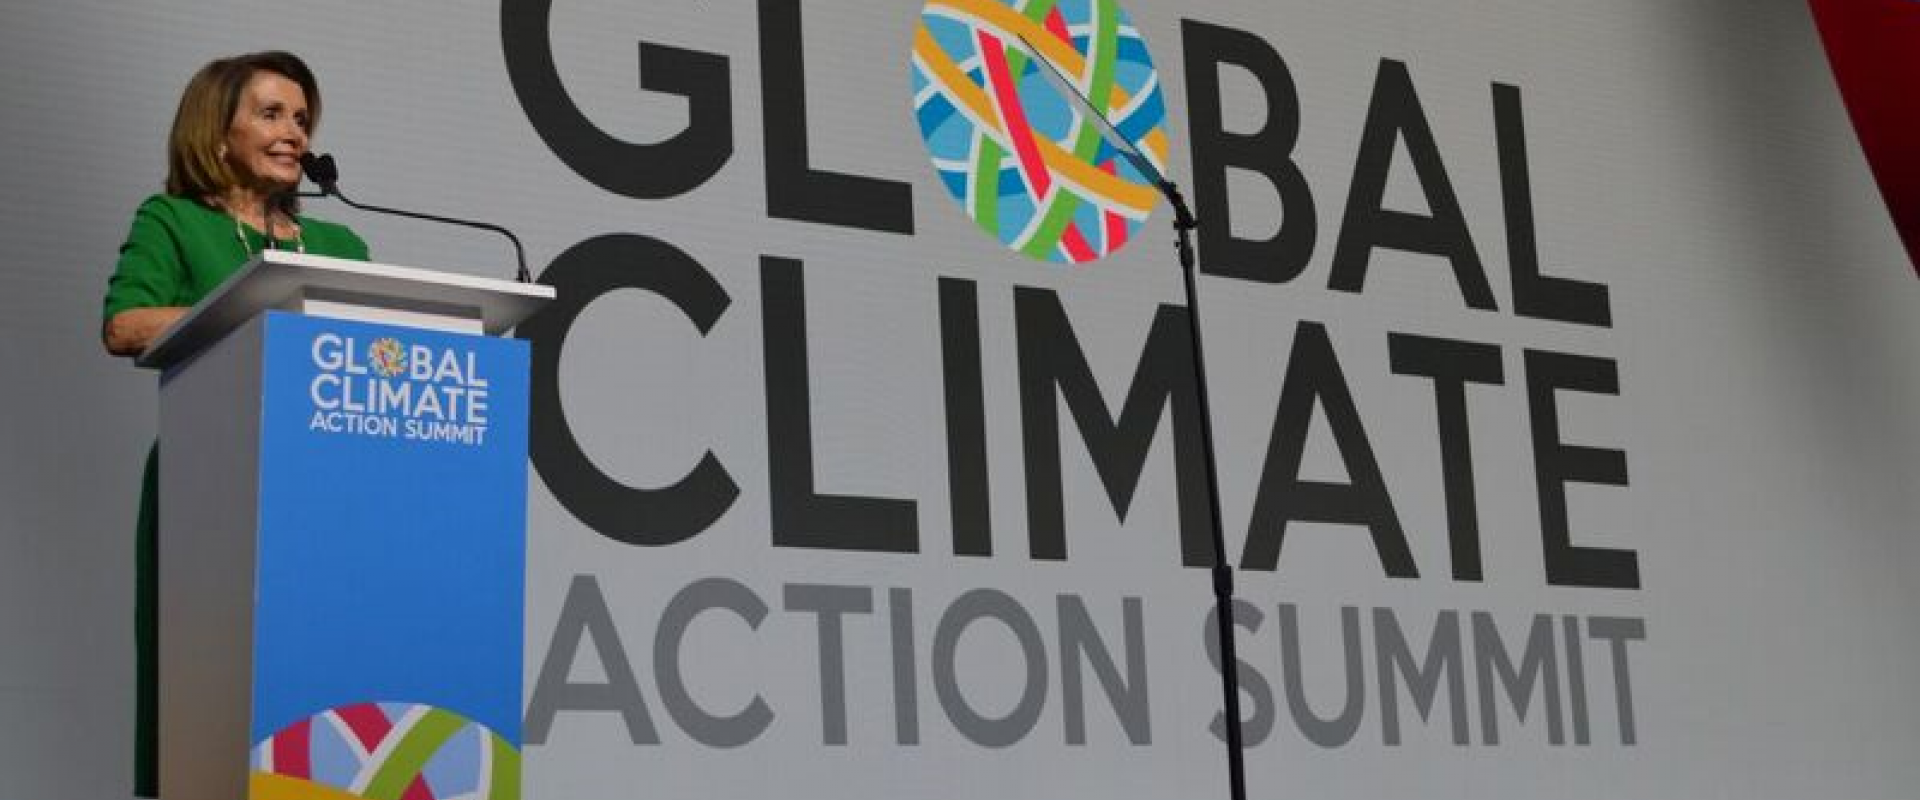 Congresswoman Pelosi joins Governor Brown, Mayor Bloomberg, and thousands of elected officials and environmental advocates from around the world at the Global Climate Action Summit Conference to discuss the urgent need to confront climate change, one of t